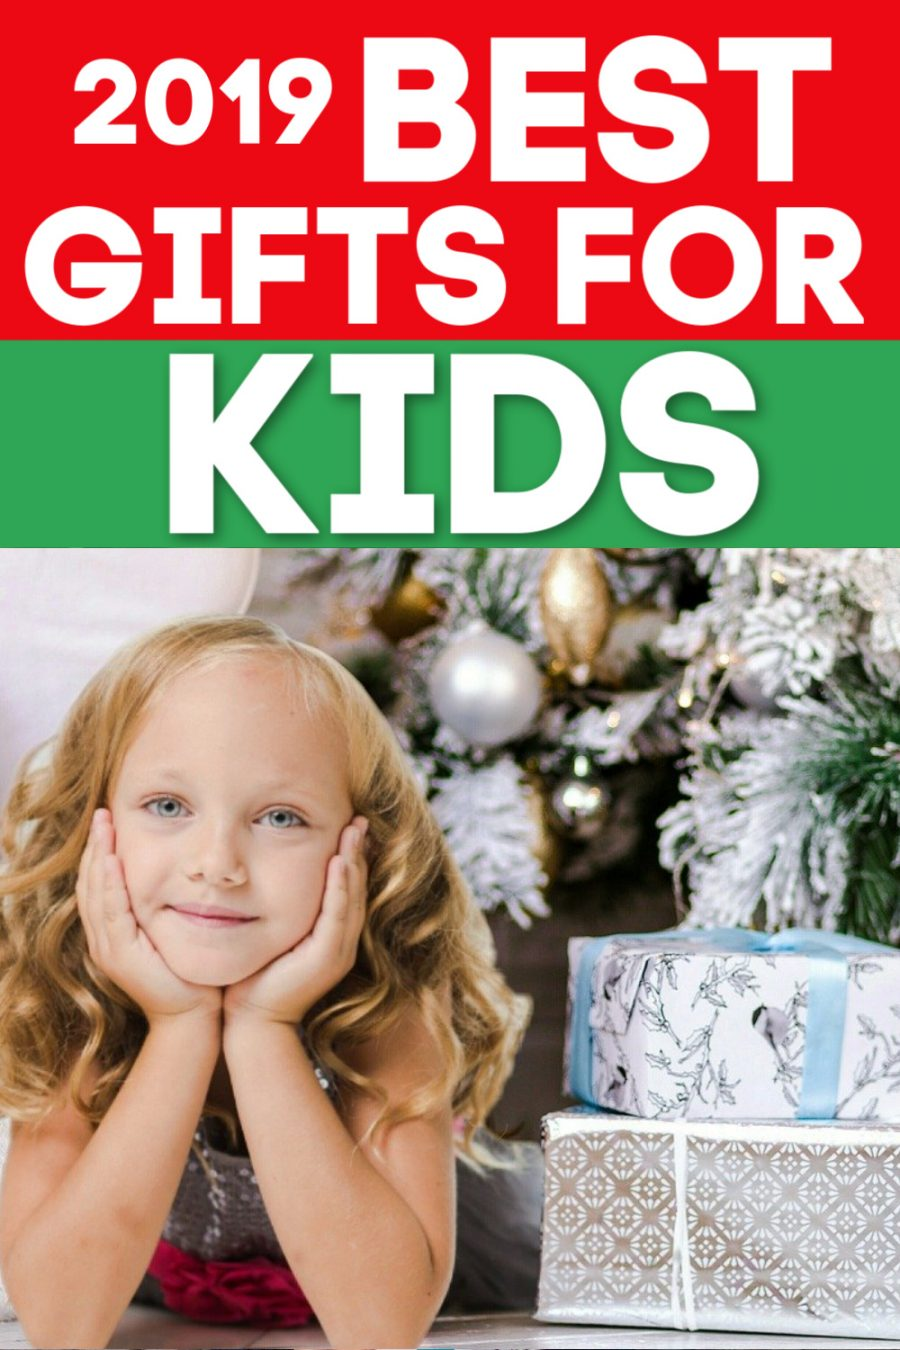 2019 Best Gifts for Kids